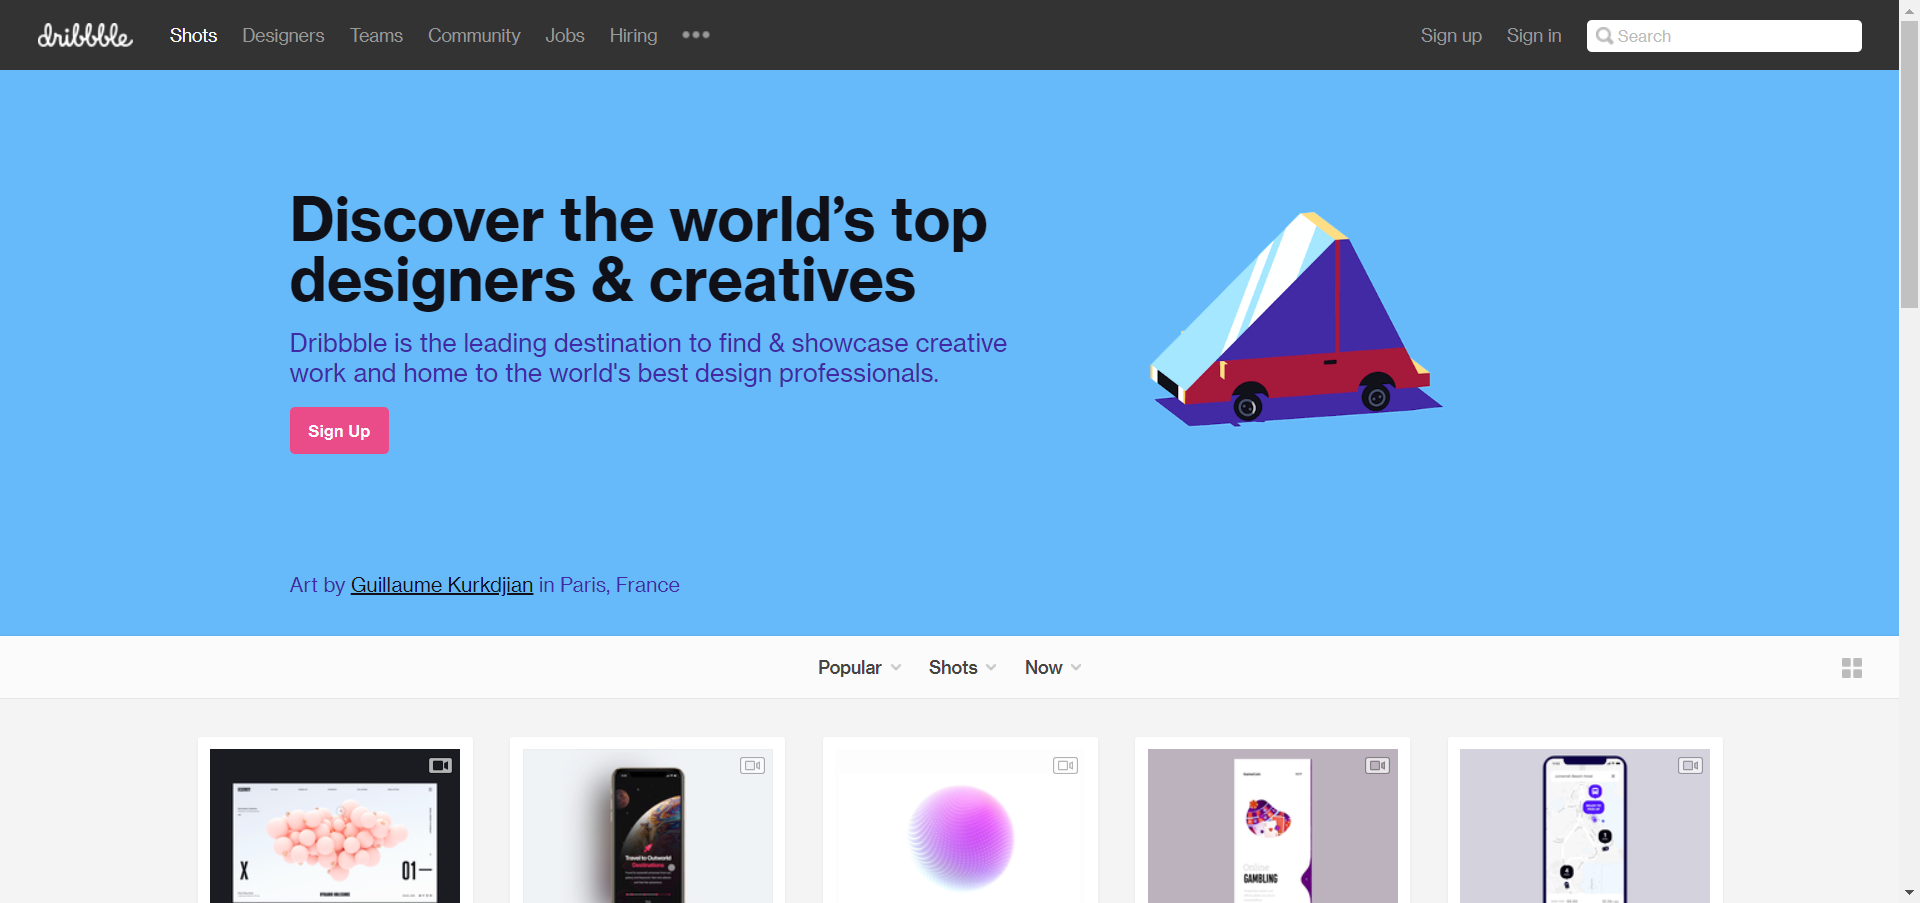 Dribbble website image